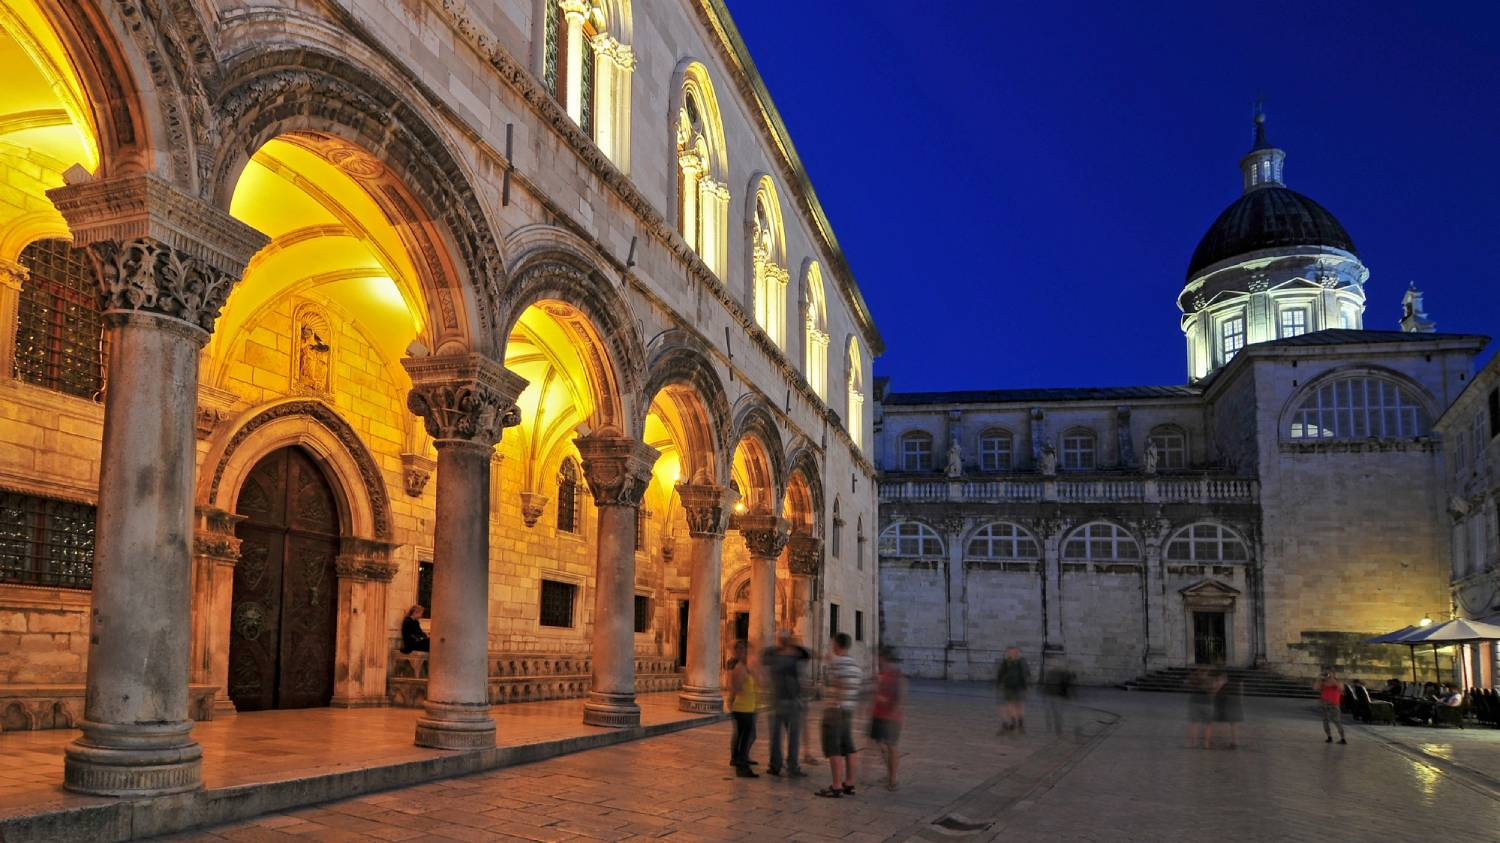 Rector's Palace - Things To Do In Dubrovnik